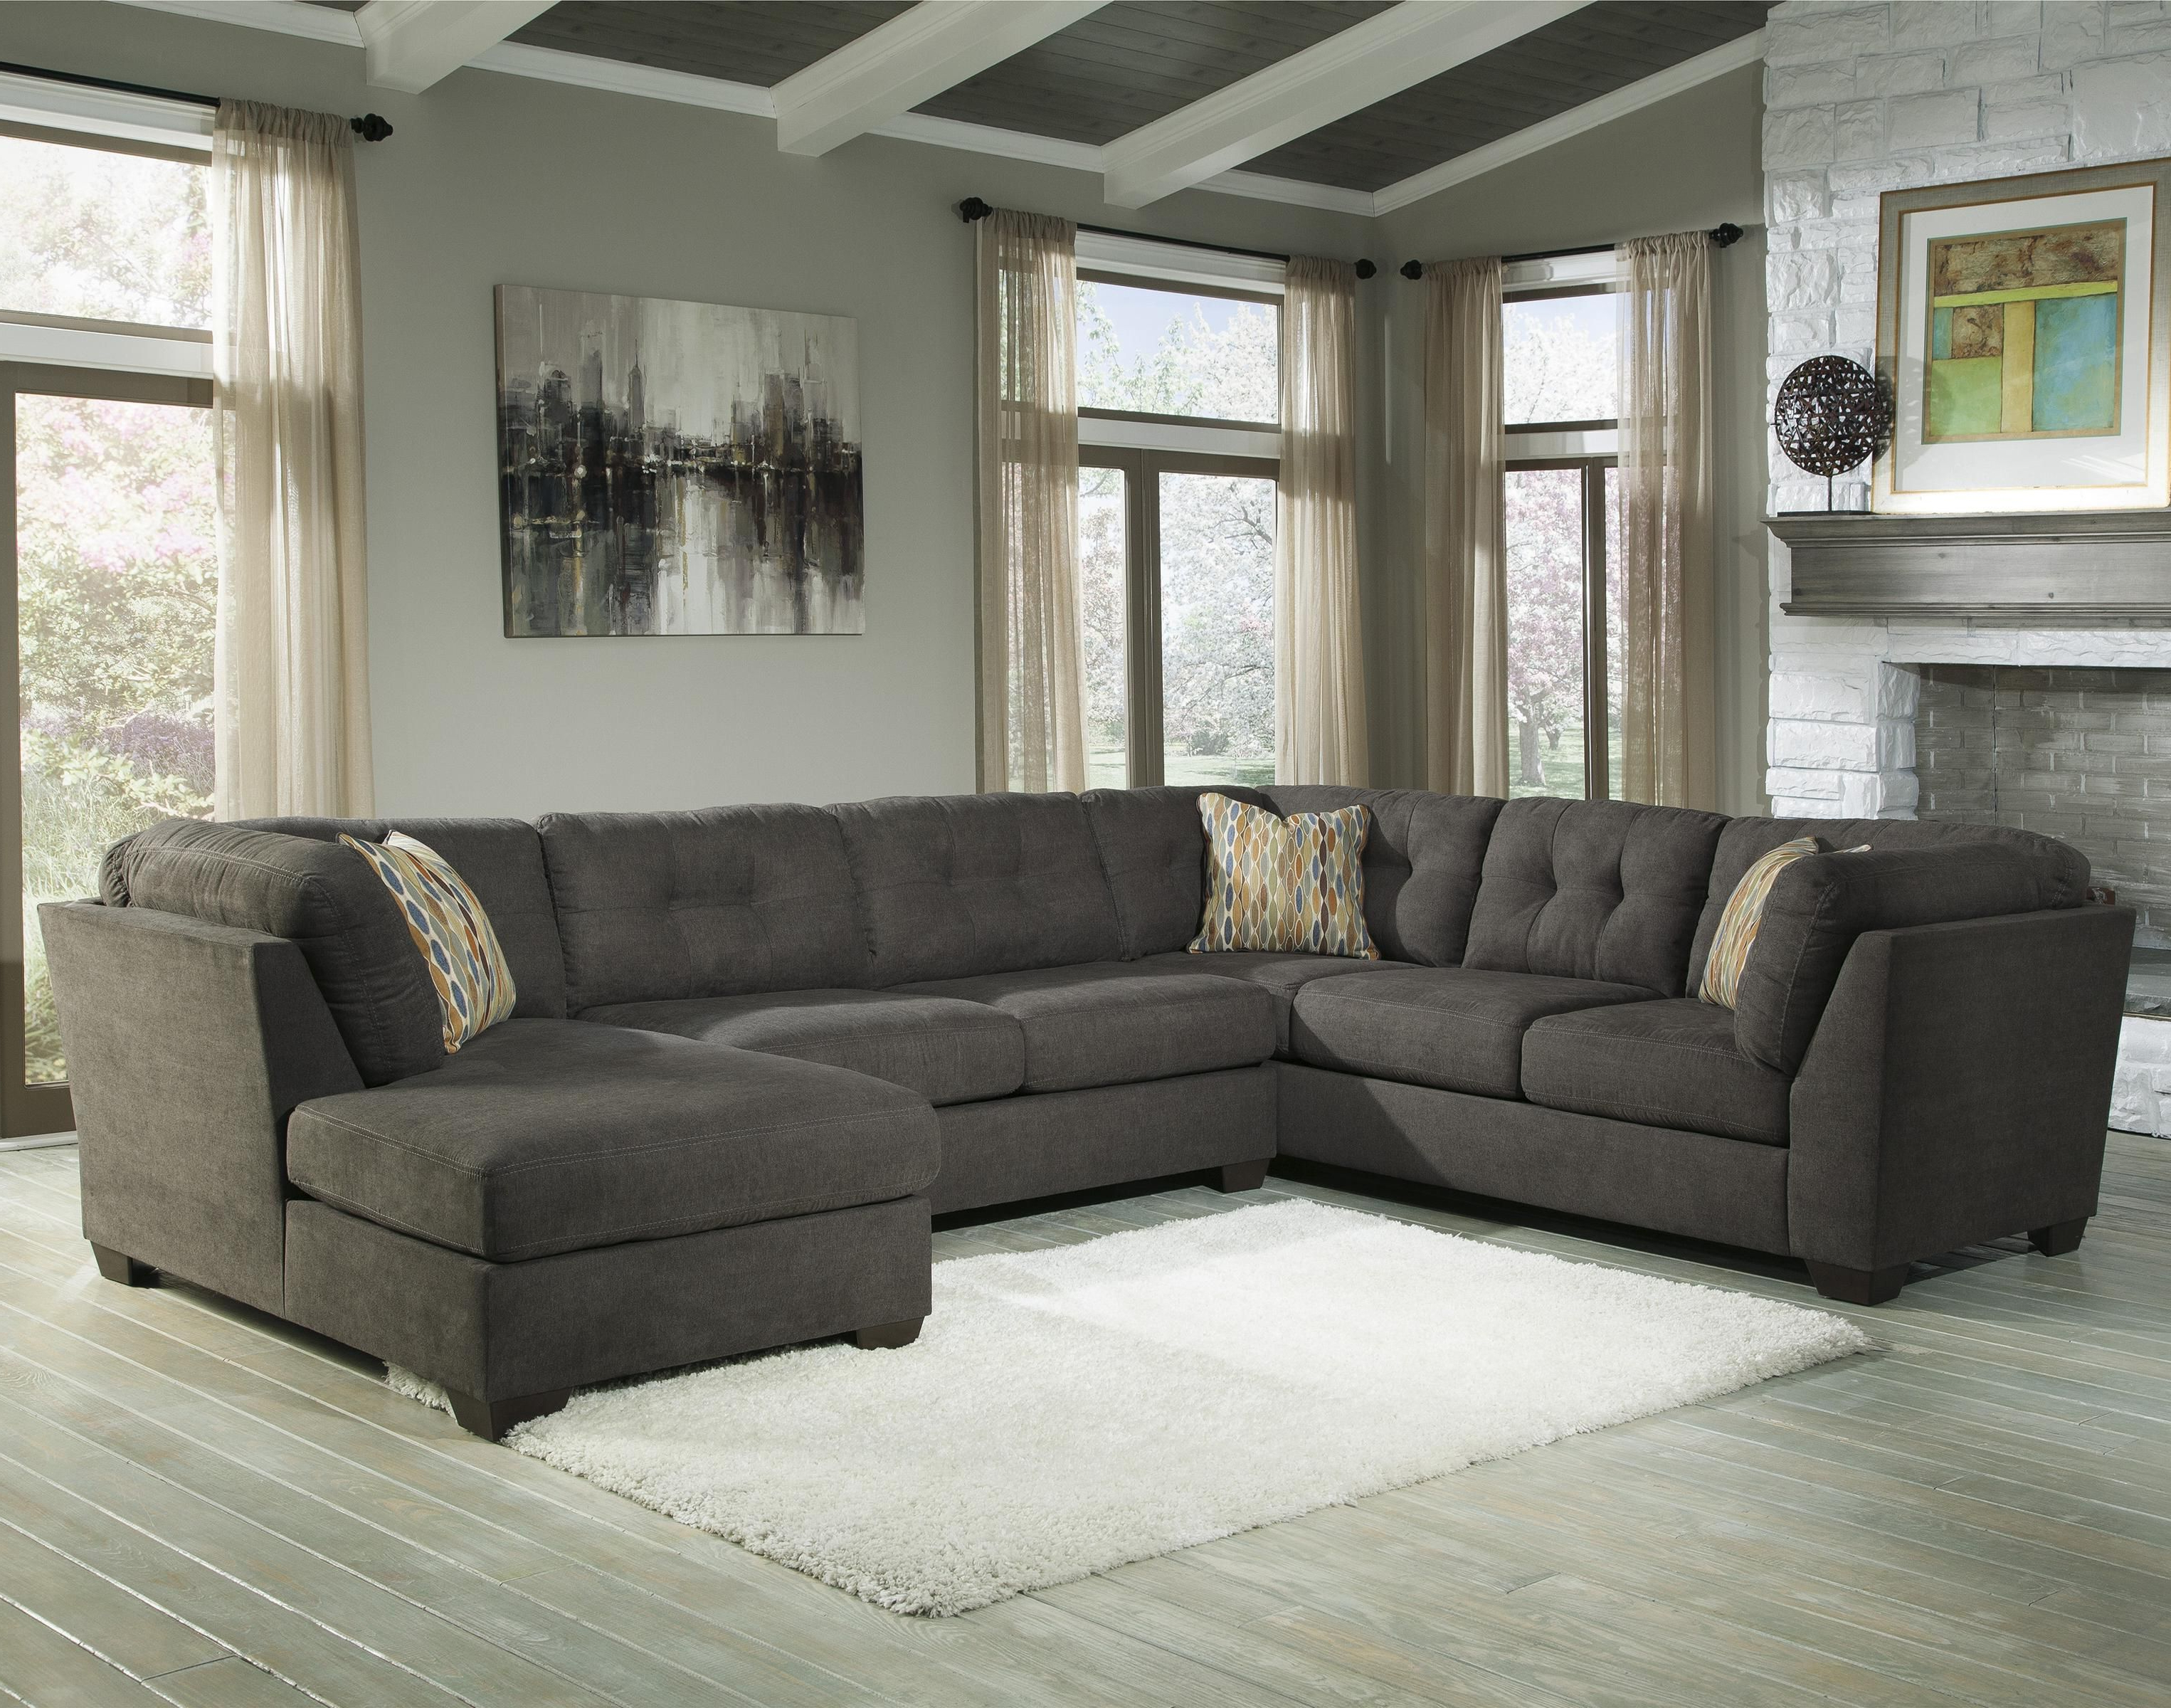 Delta City – Steel 3 Piece Modular Sectional With Right Chaise Within Newest Haven Blue Steel 3 Piece Sectionals (View 2 of 20)